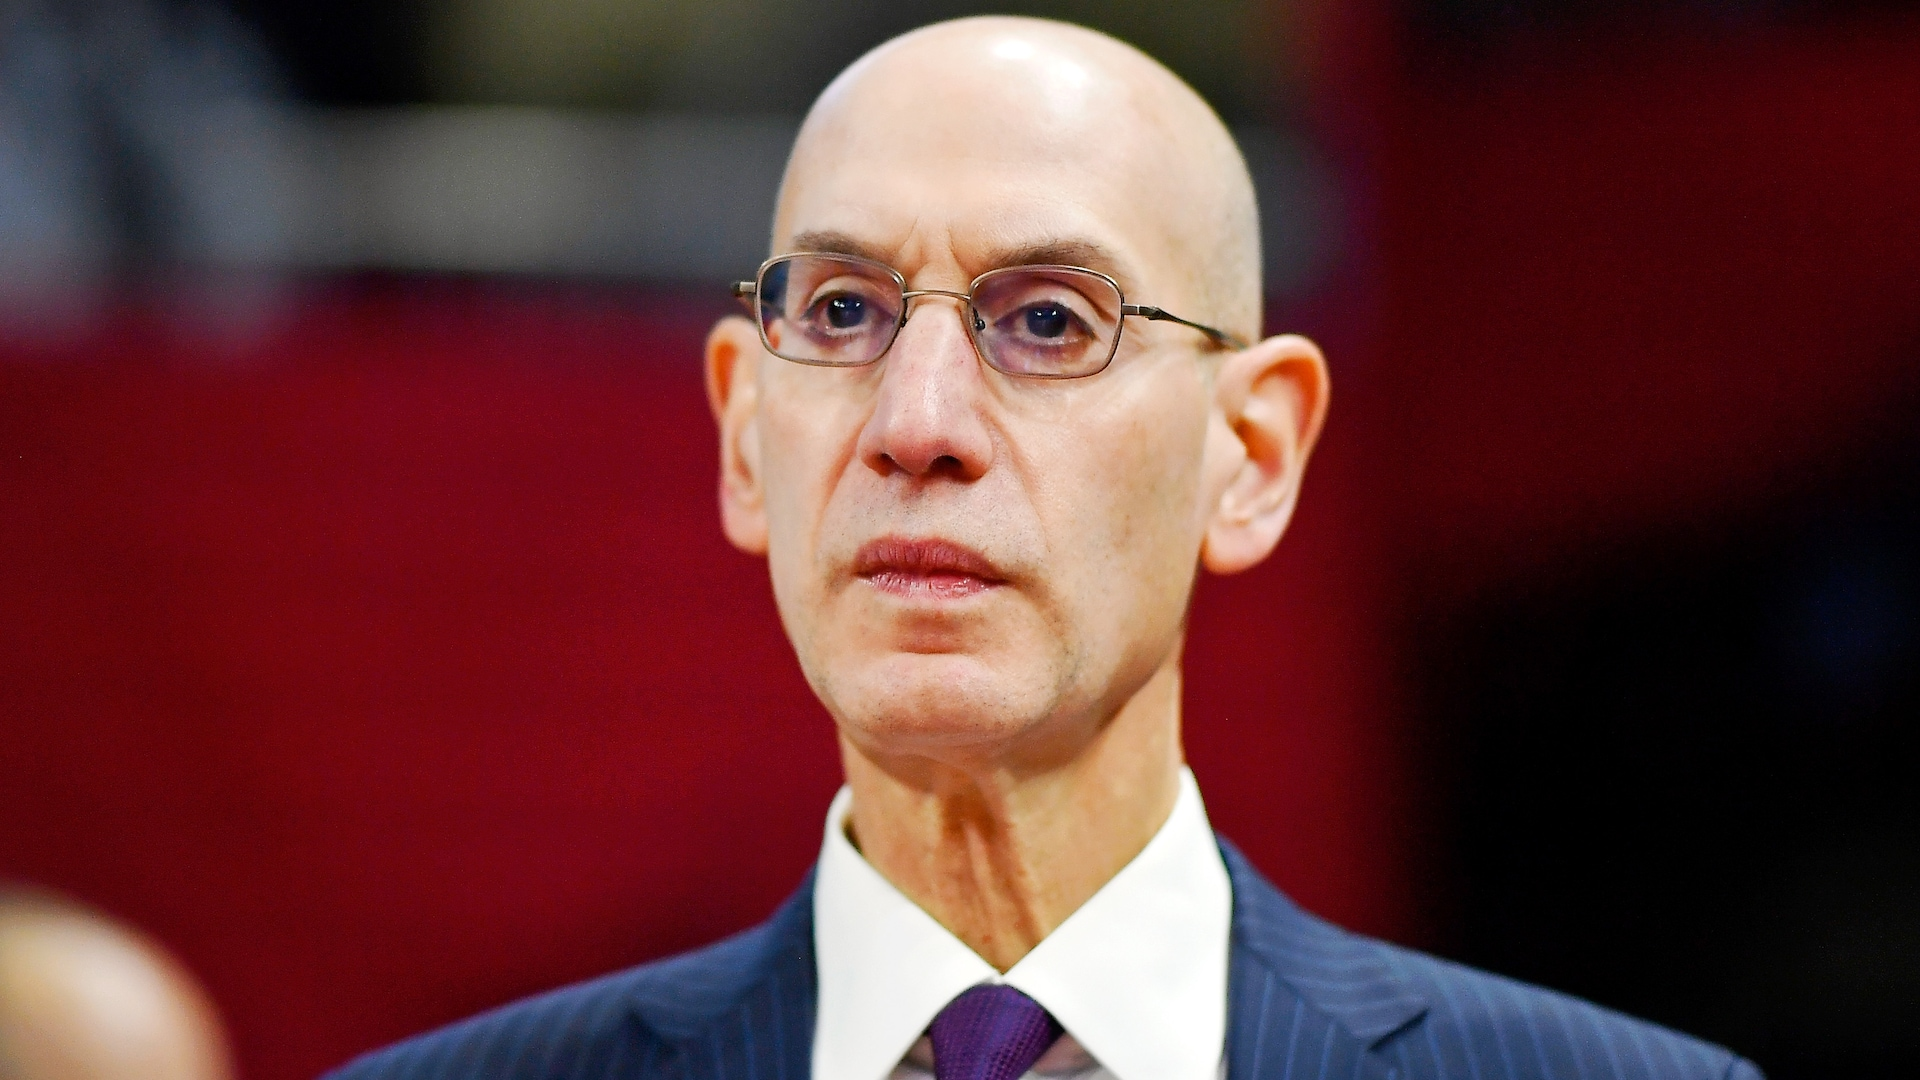 Memo from NBA Commissioner Adam Silver to league employees